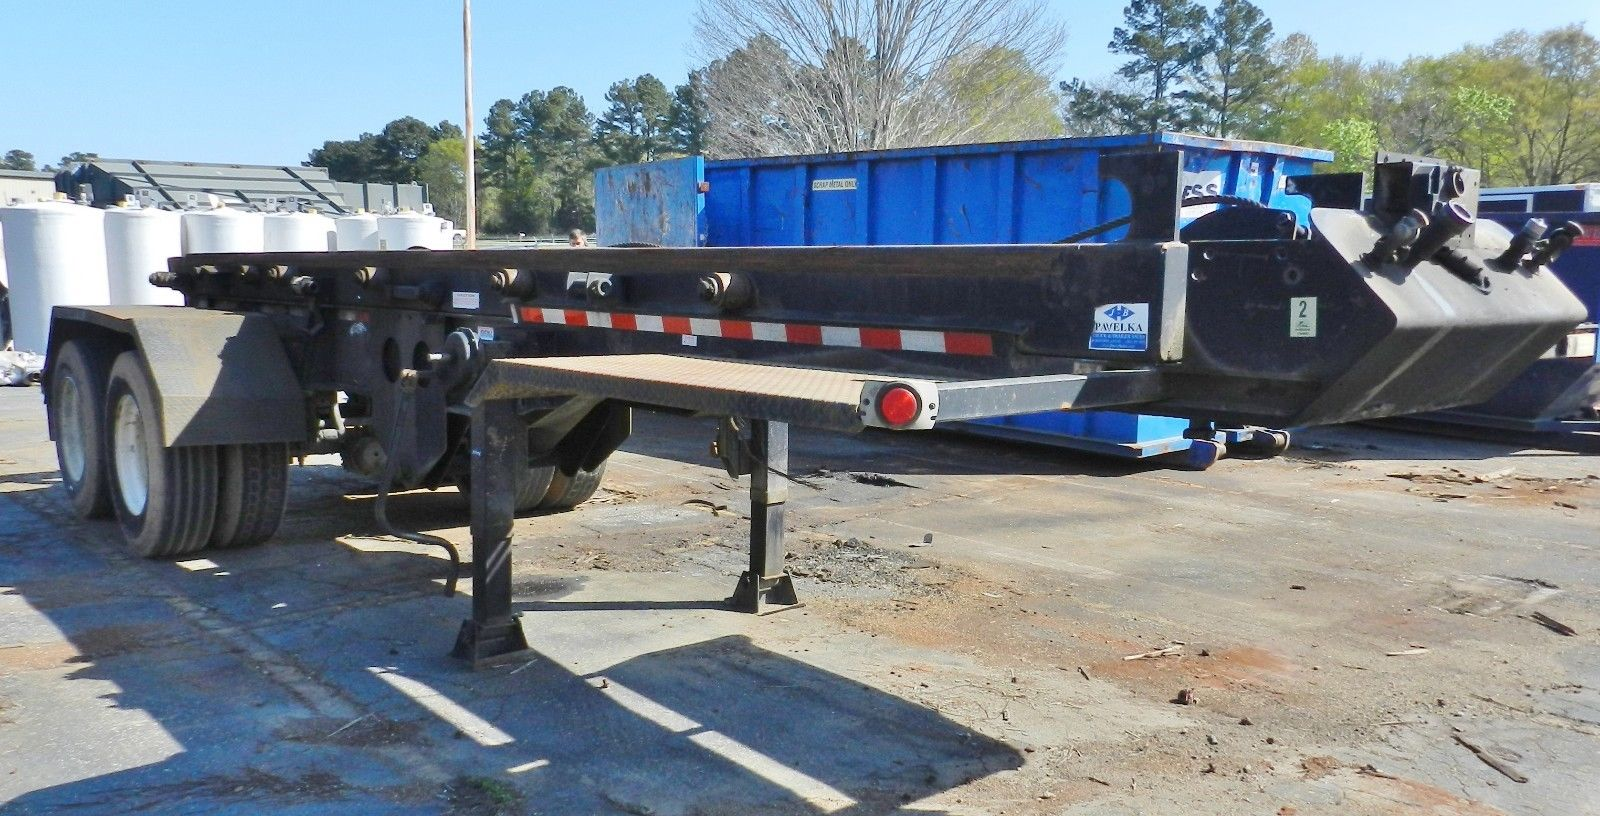 Lot 35 - 2010 Benlee Roll-Off Trailer